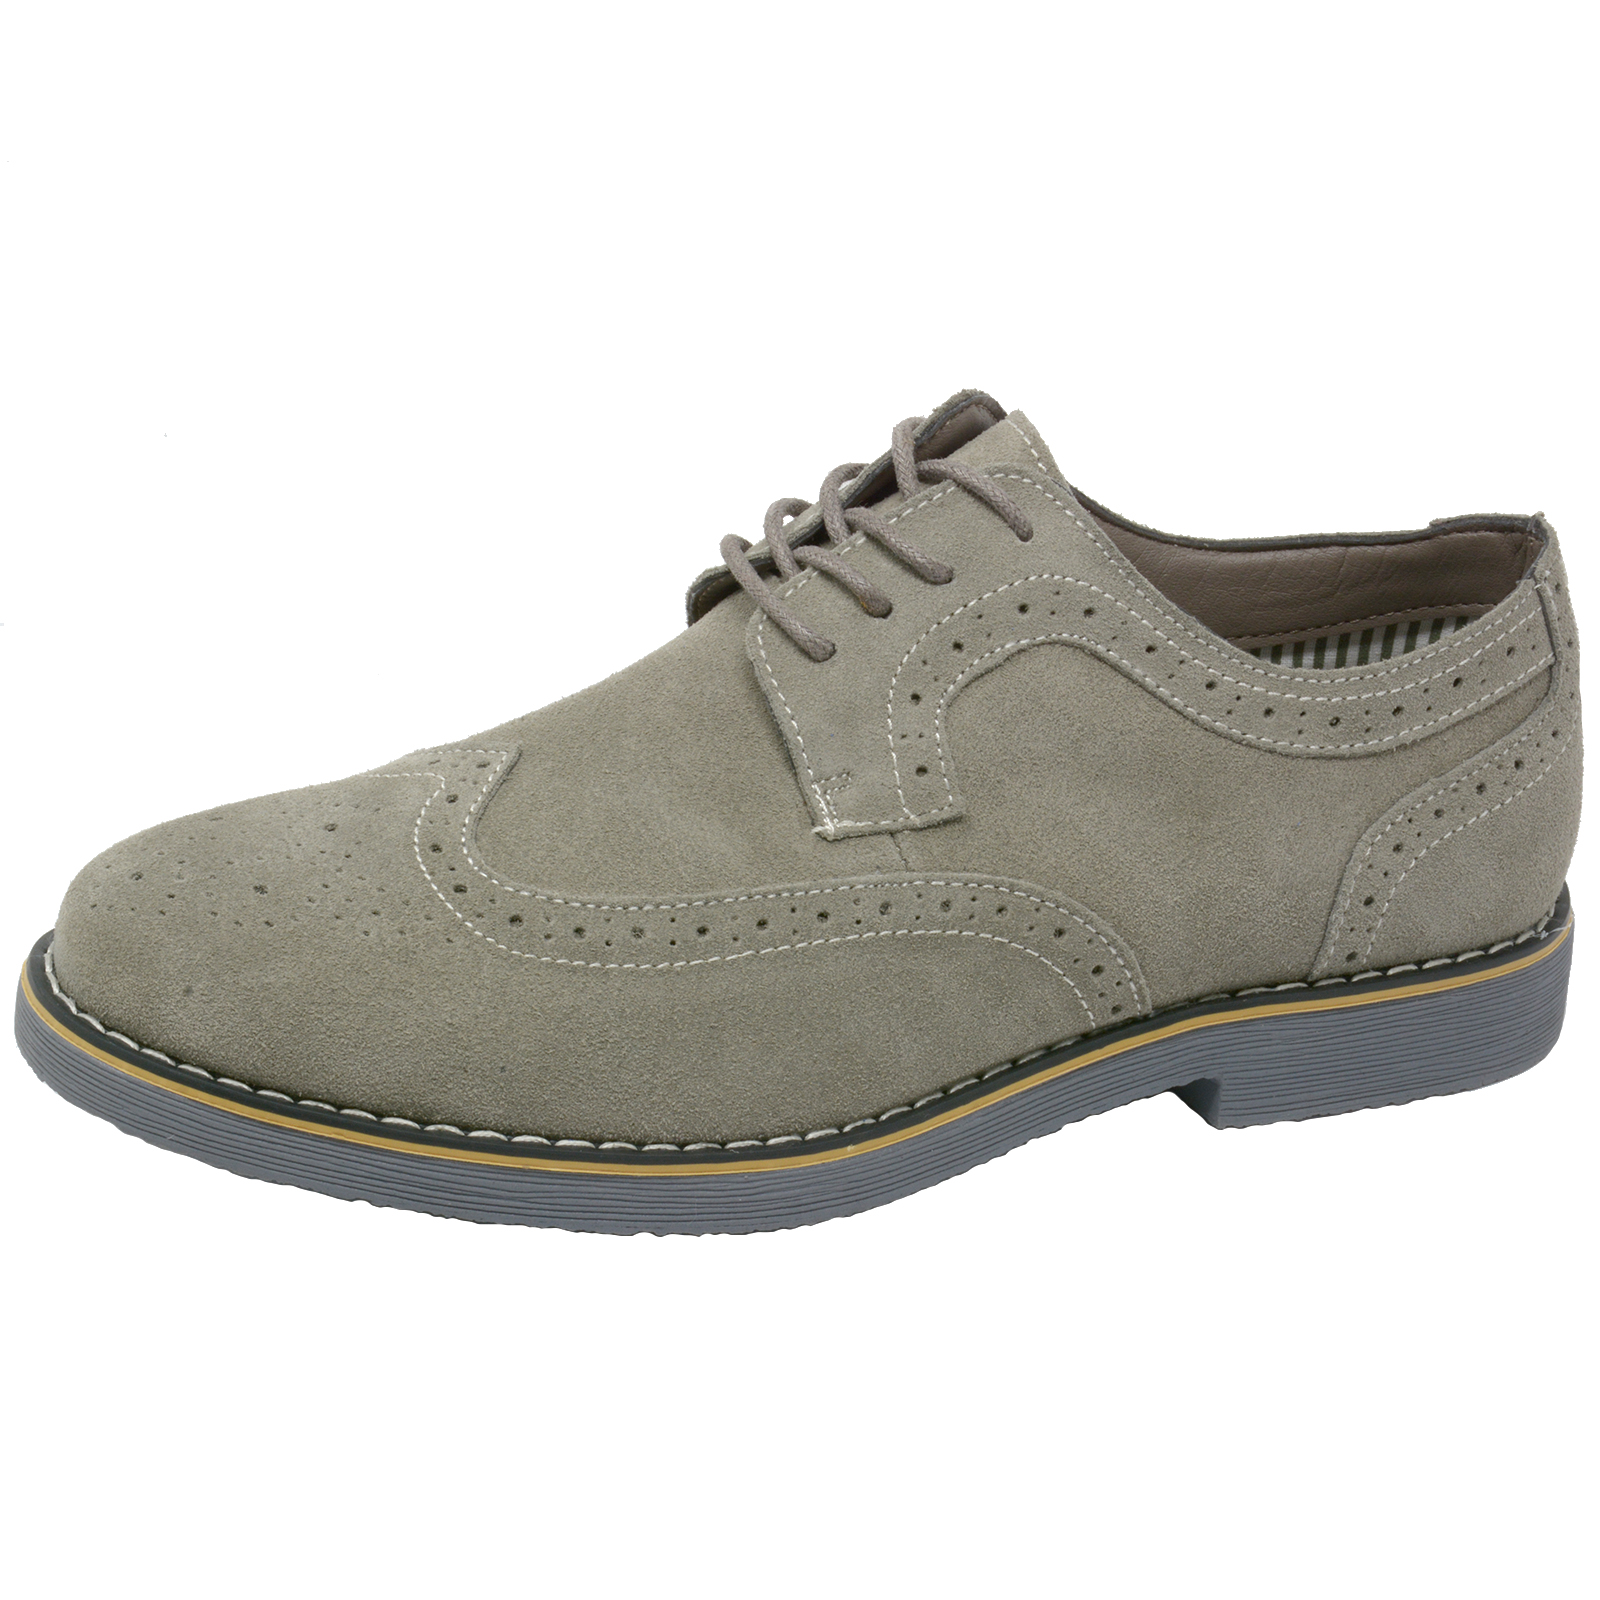 Alpine-Swiss-Beau-Mens-Dress-Shoes-Genuine-Suede-Wing-Tip-Brogue-Lace-Up-Oxfords thumbnail 19